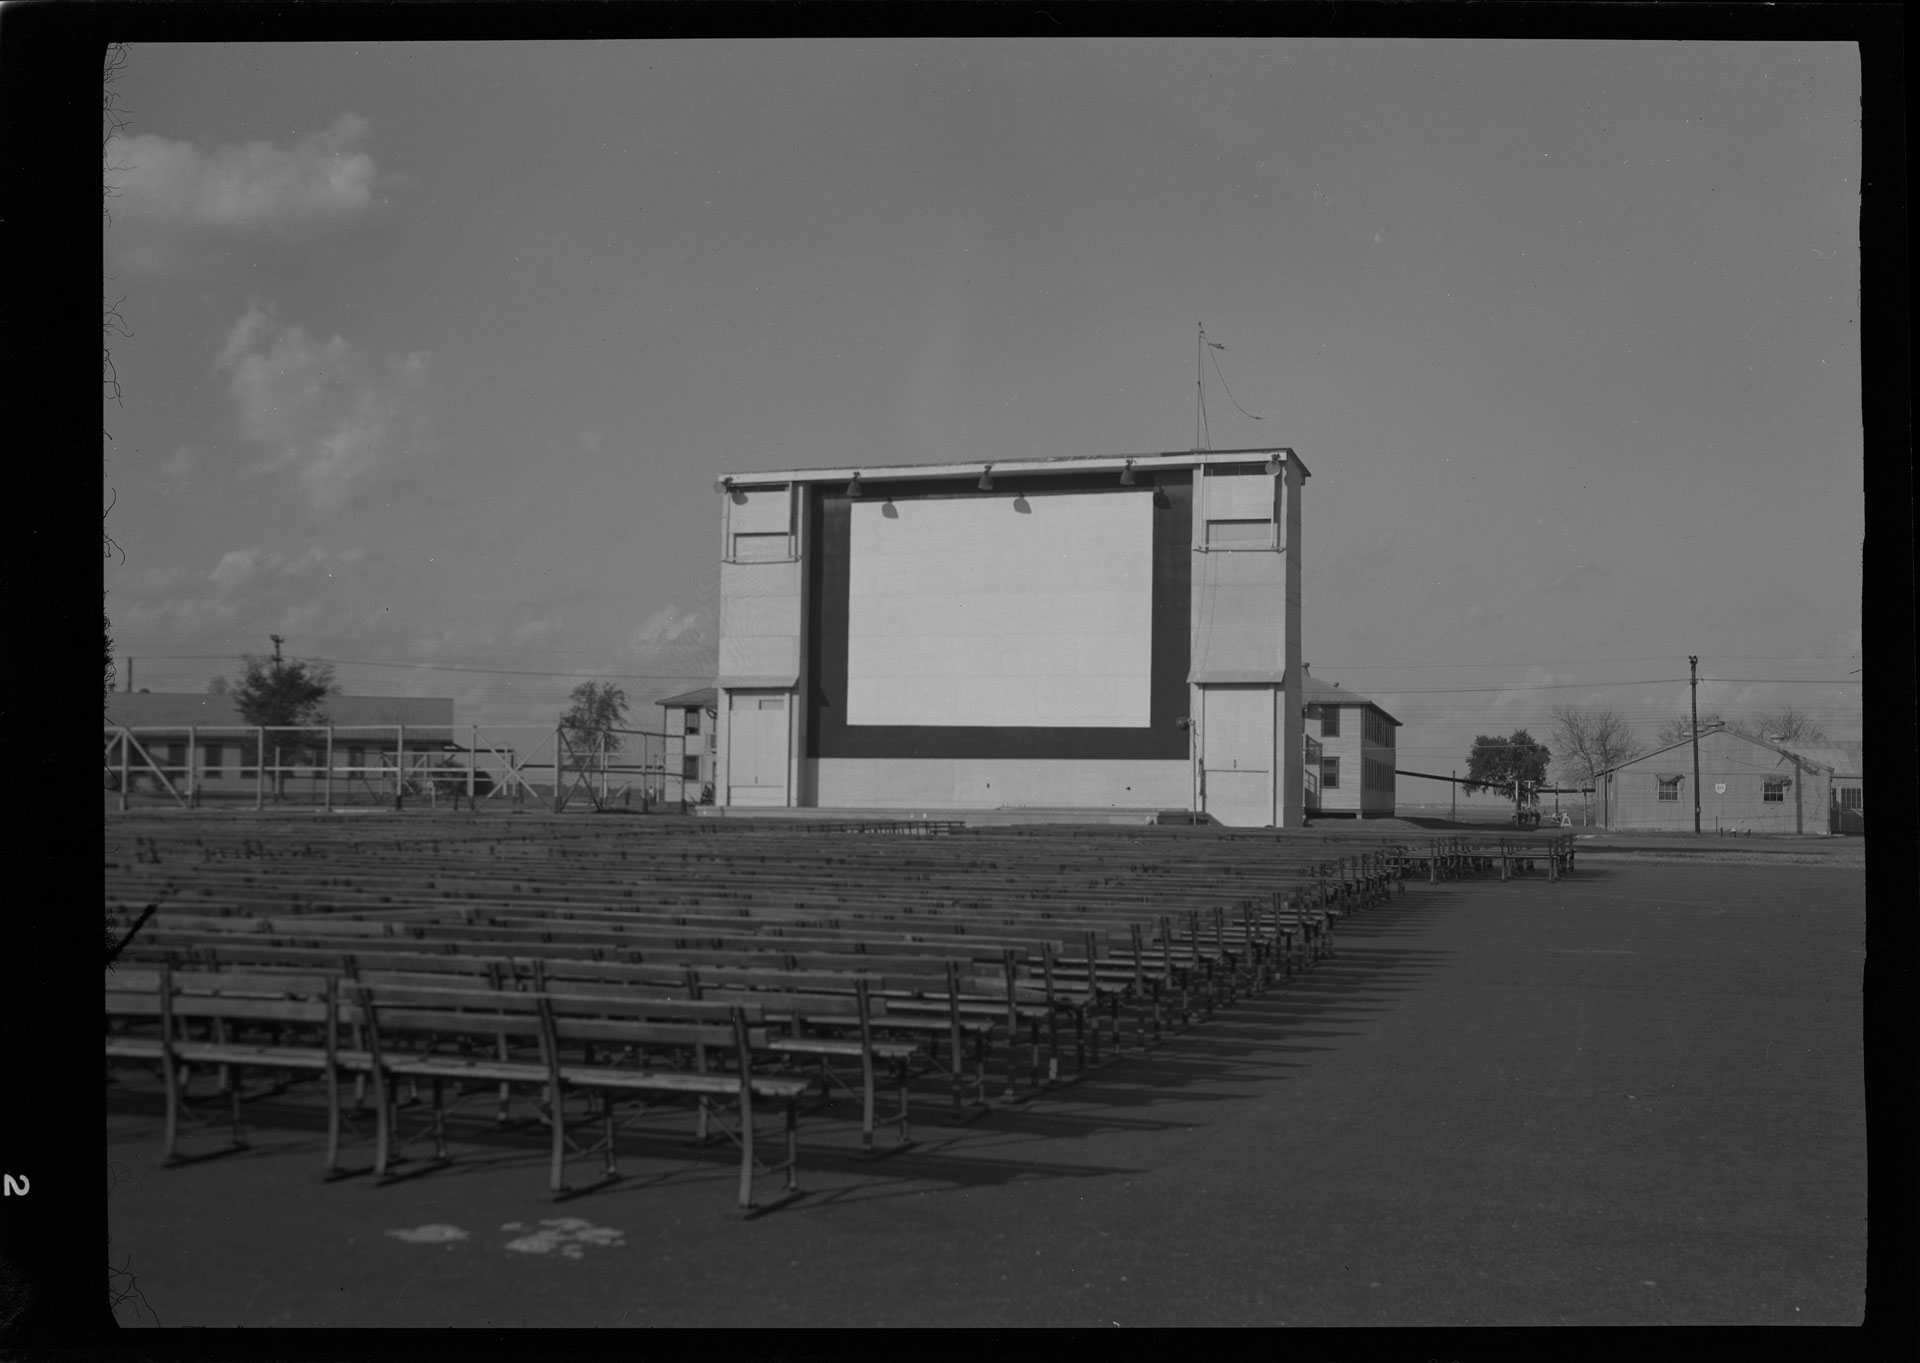 Outdoor Projection Screen at Parris Island